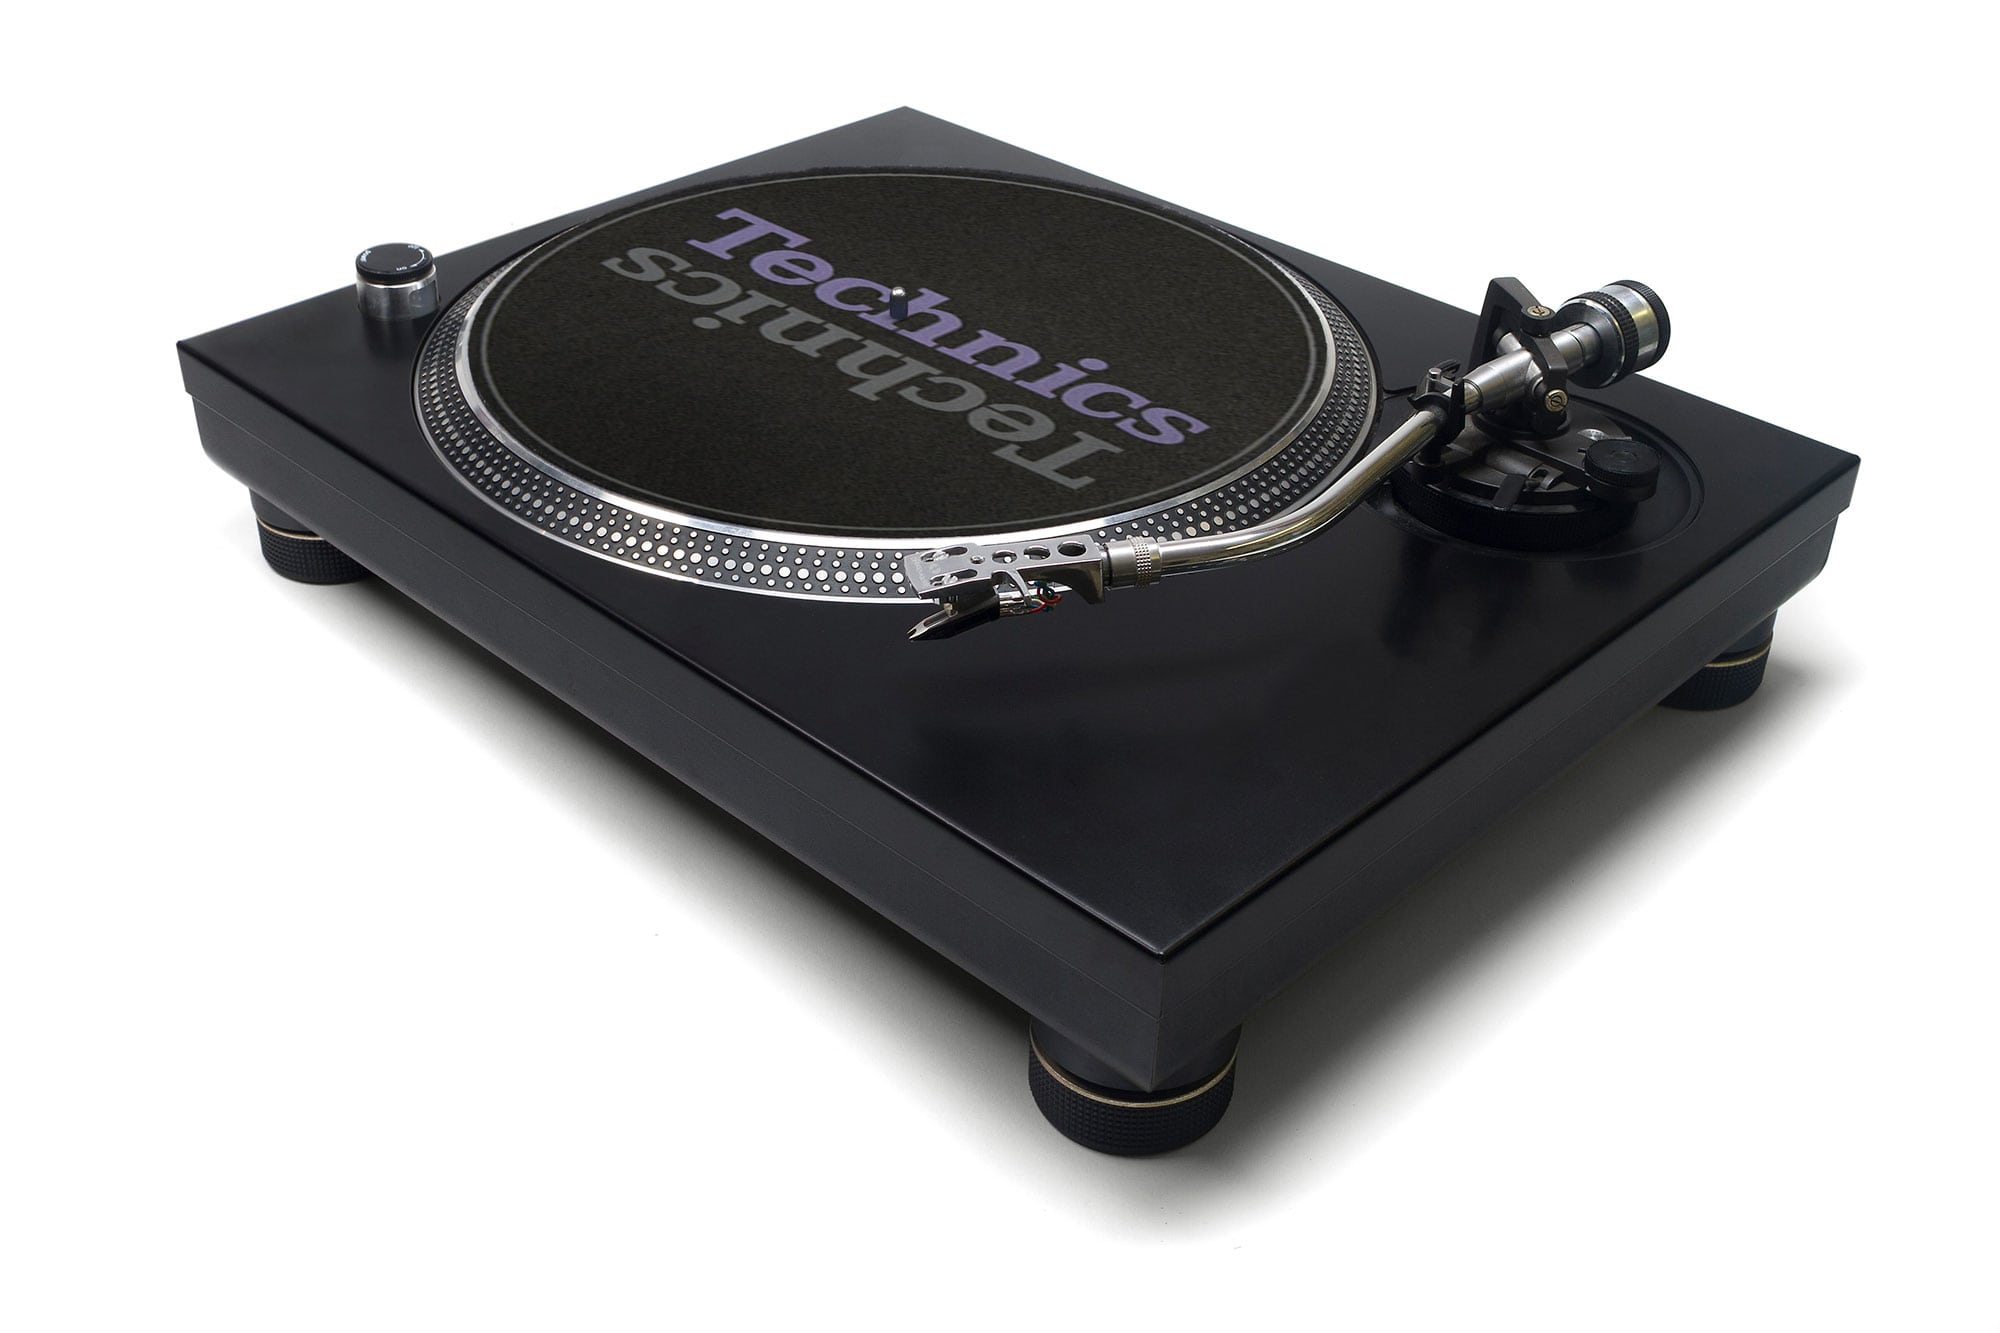 OPINION: The dumbing down of DJ turntables has to stop 5